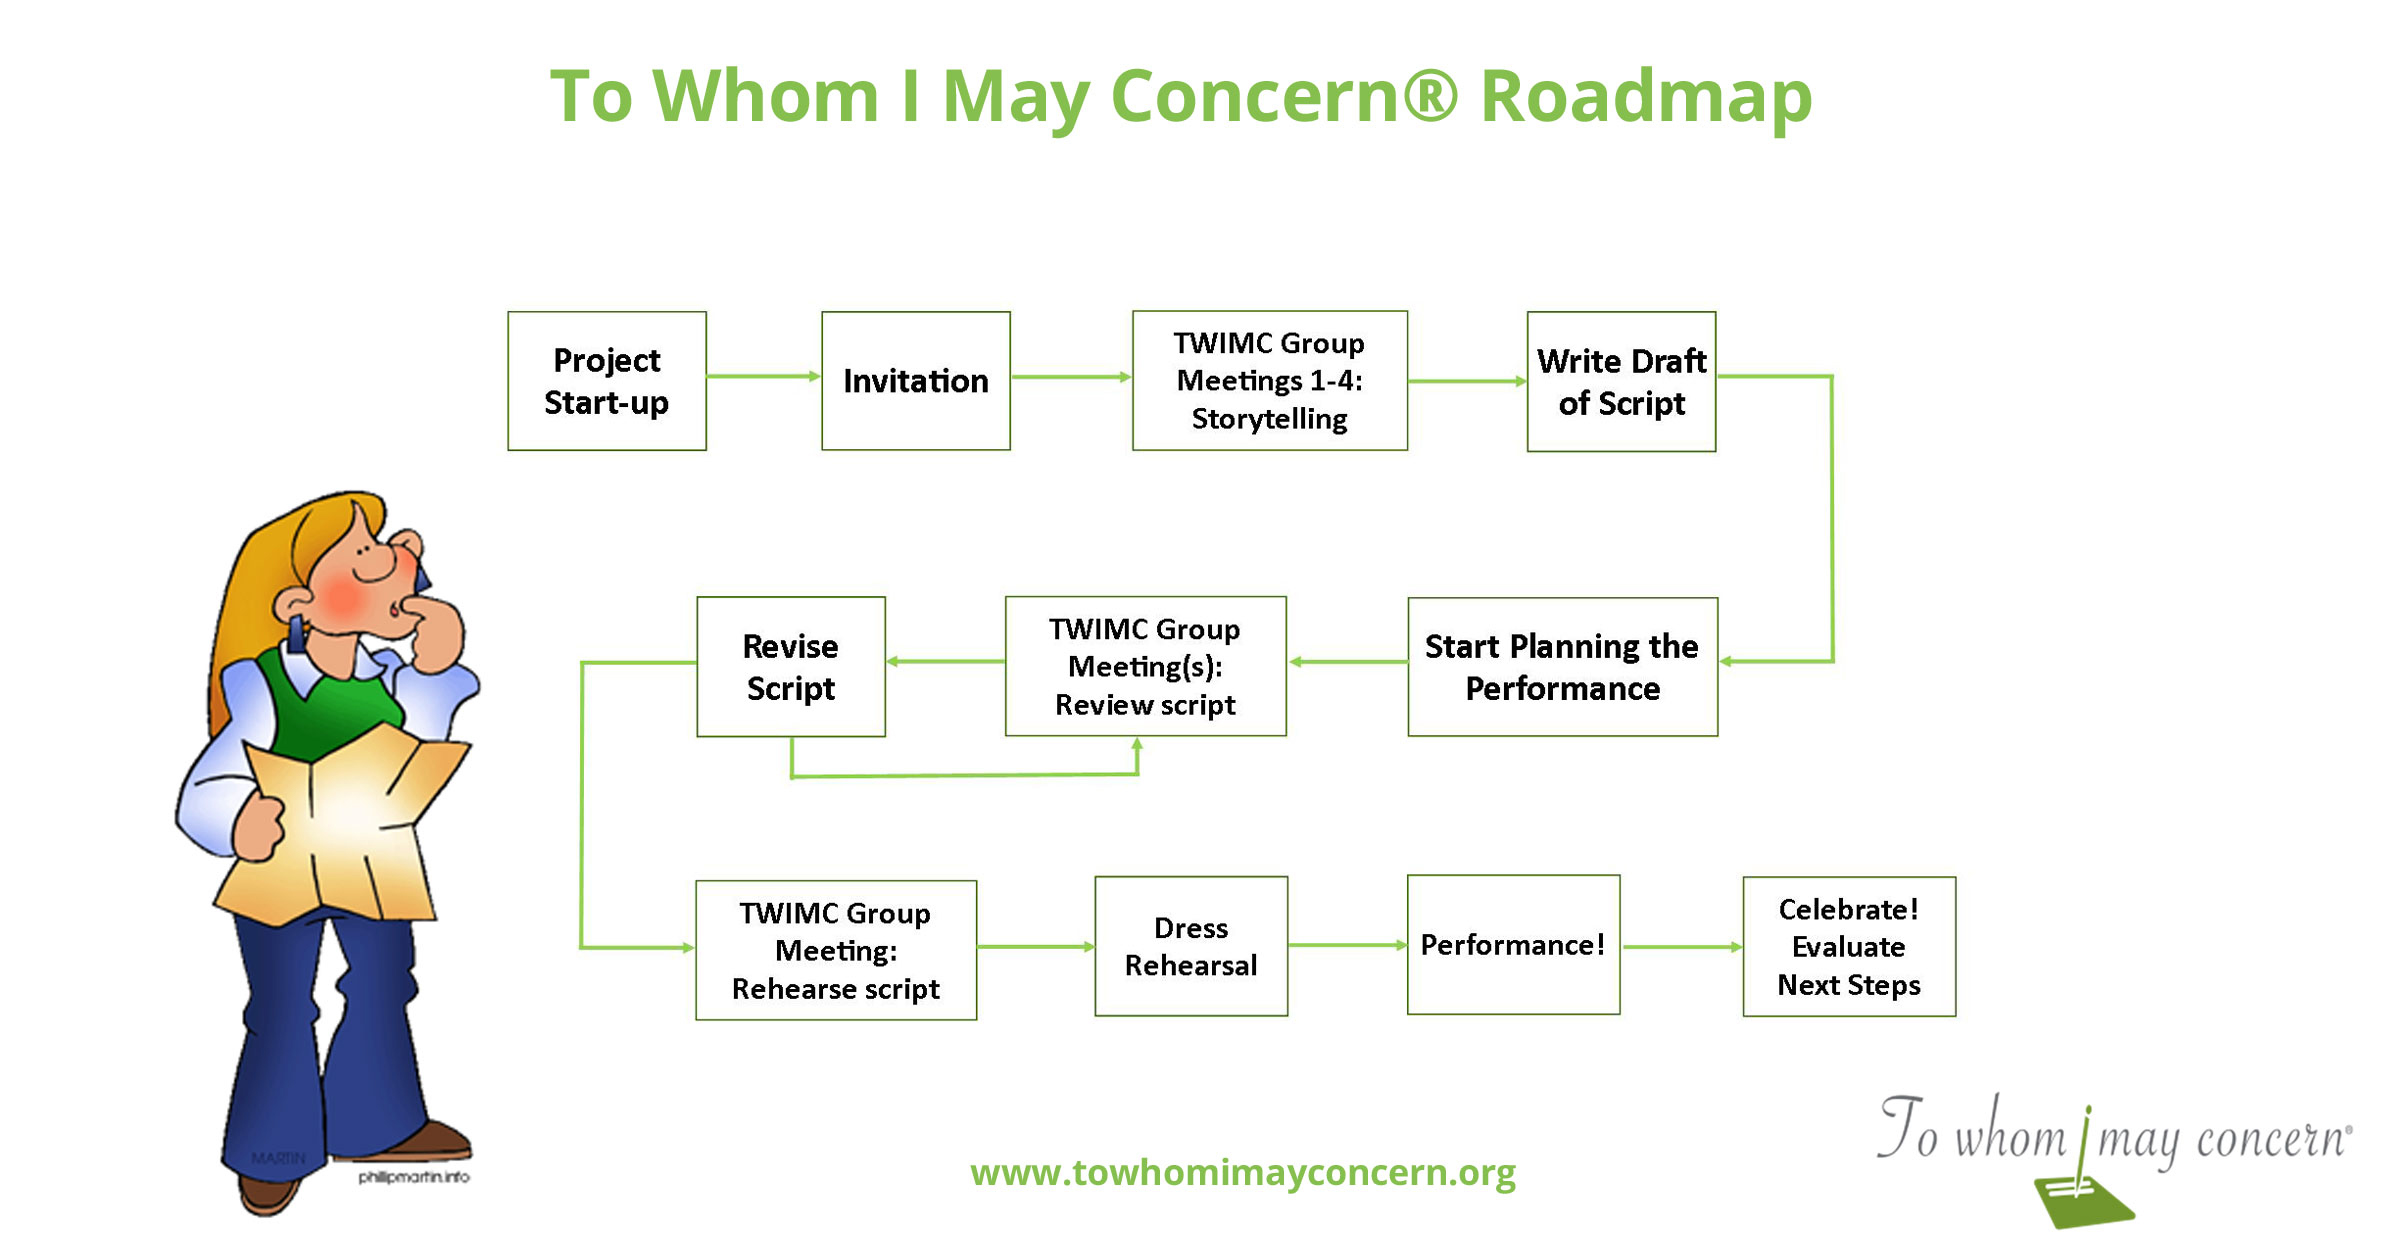 The To Whom I May Concern Roadmap